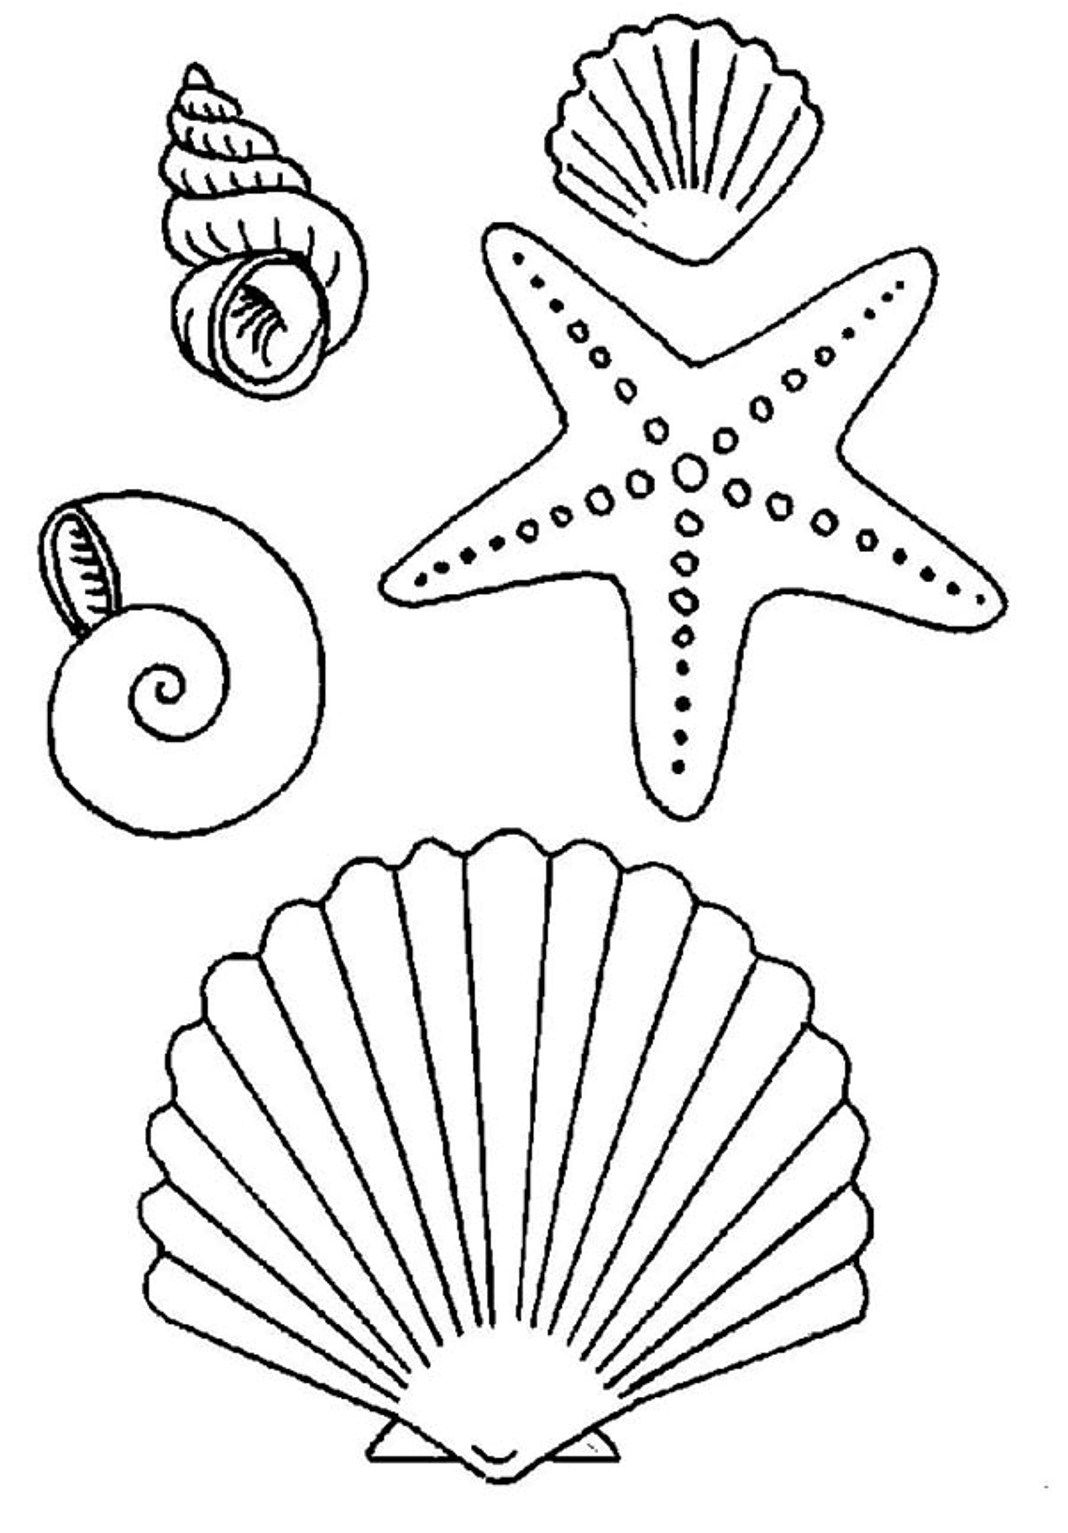 Images For Gt Simple Seashell Drawings Manualidades Patrones